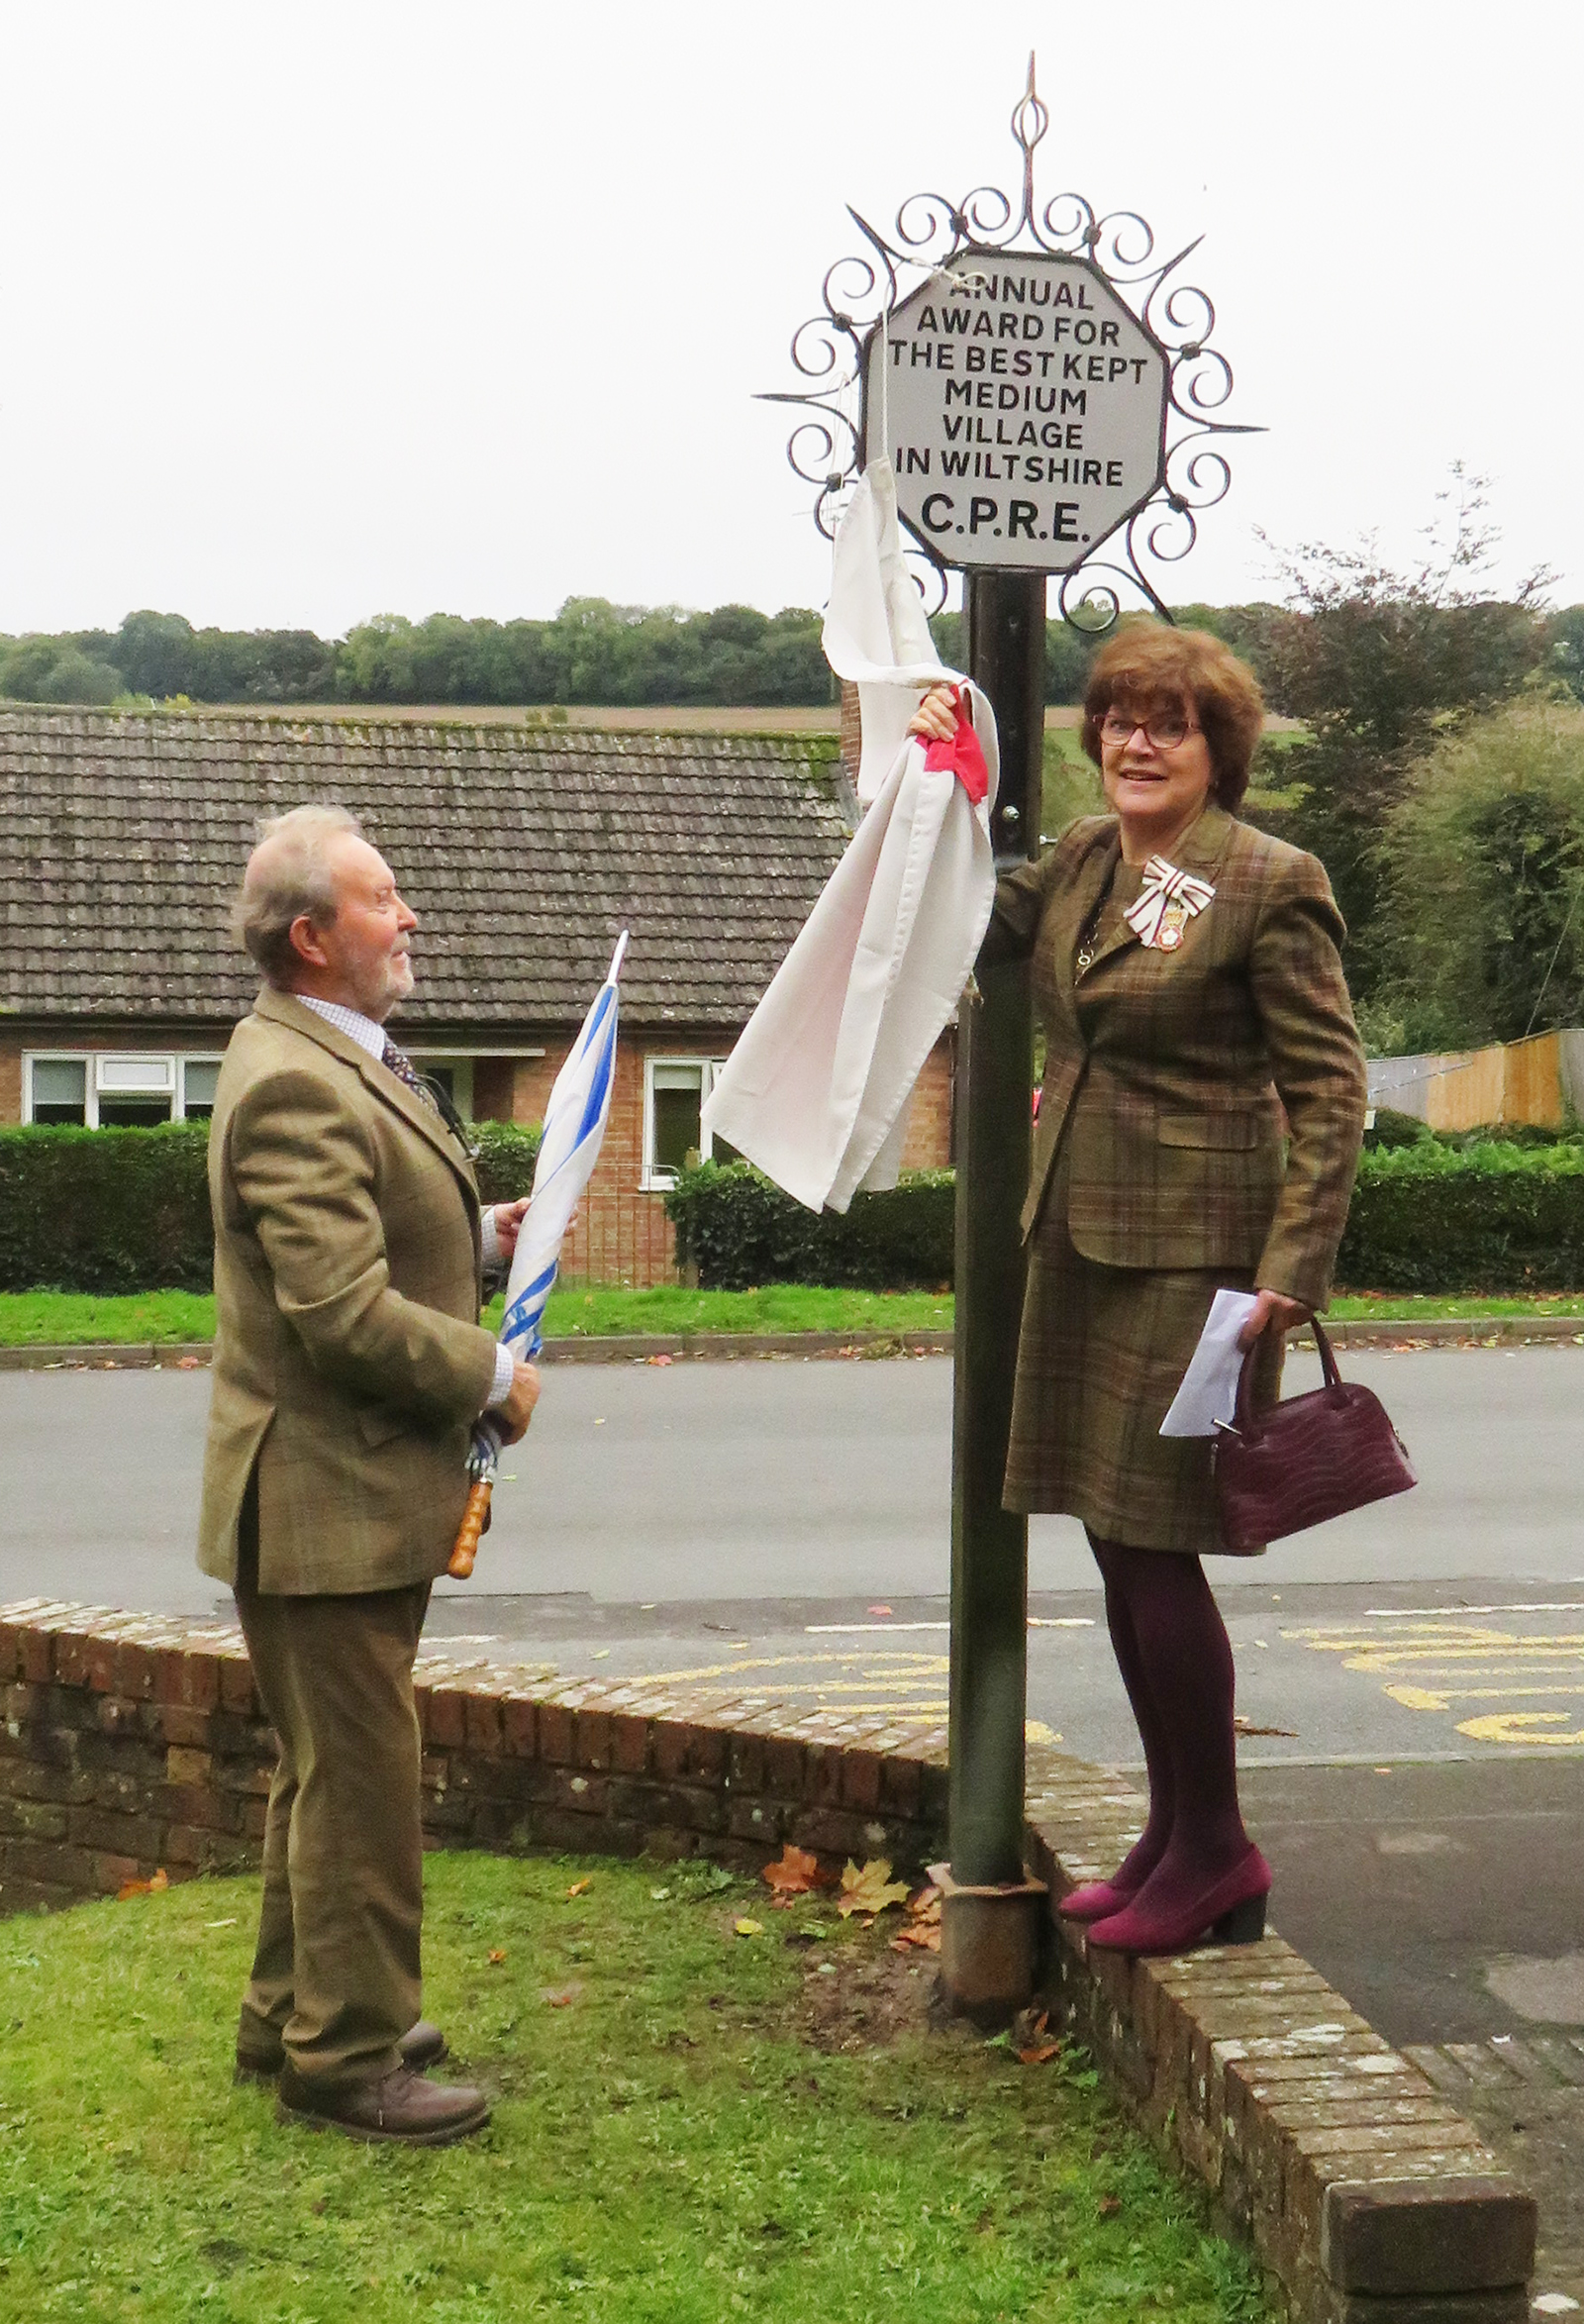 Mrs Sarah Troughton President of the Wiltshire Branch CPRE and Lord Lieutenant for Wiltshire unveils the standard and shield assisted by Sir Nigel Thompson Chair of Minal Parish Council